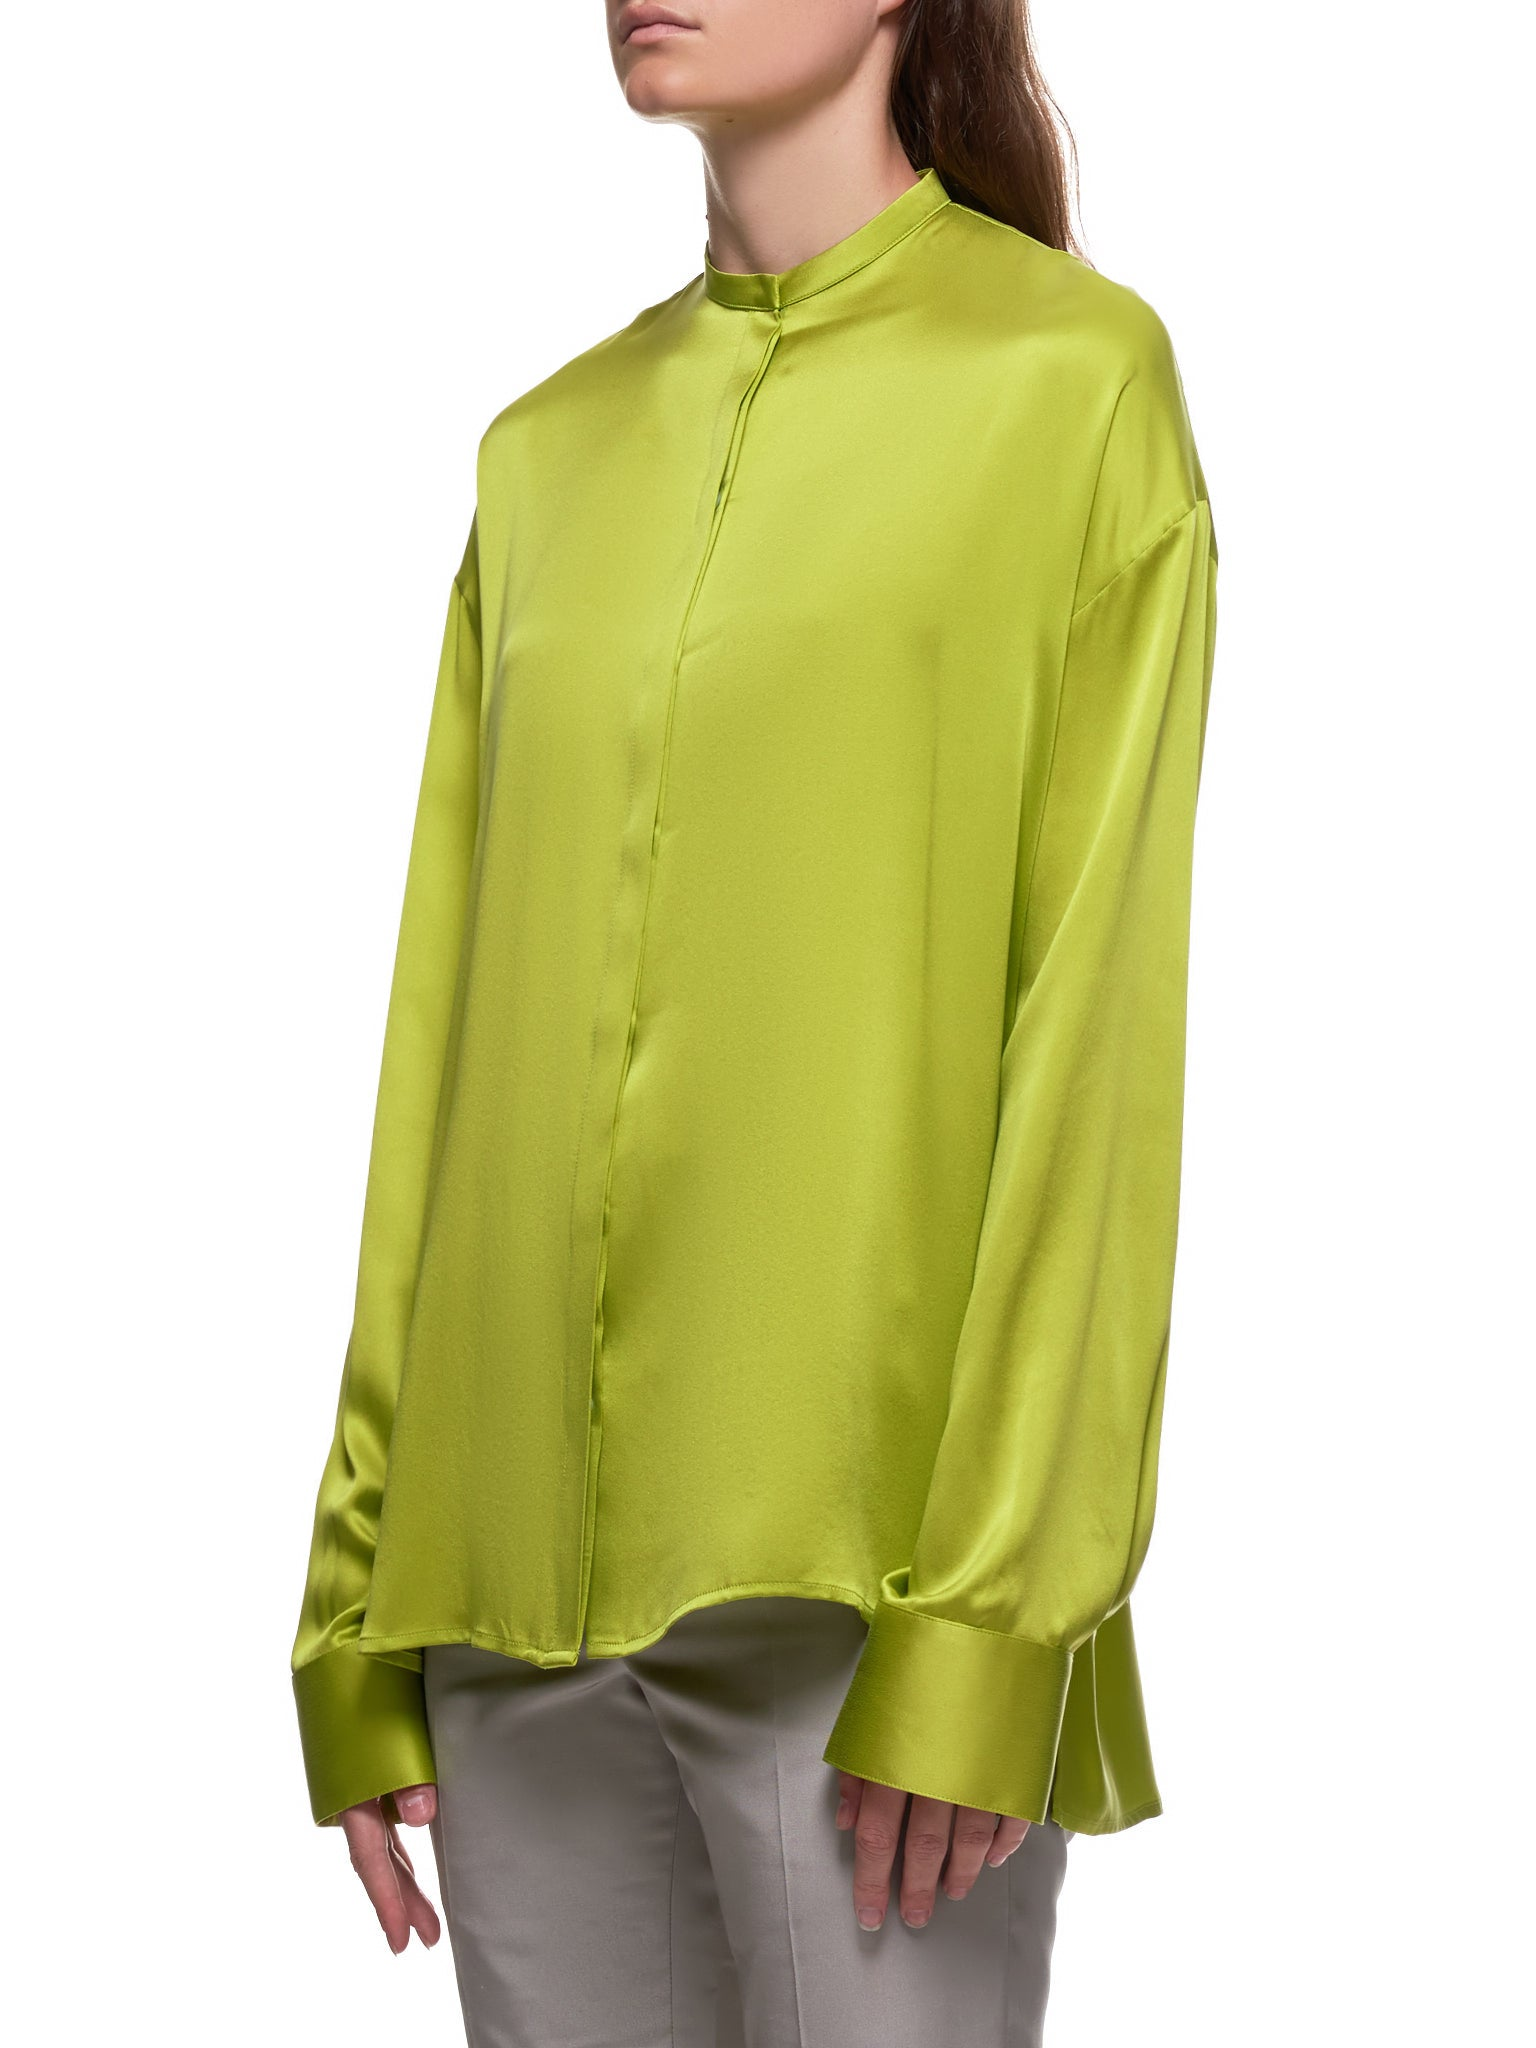 Haider Ackermann Shirt | H.Lorenzo Side